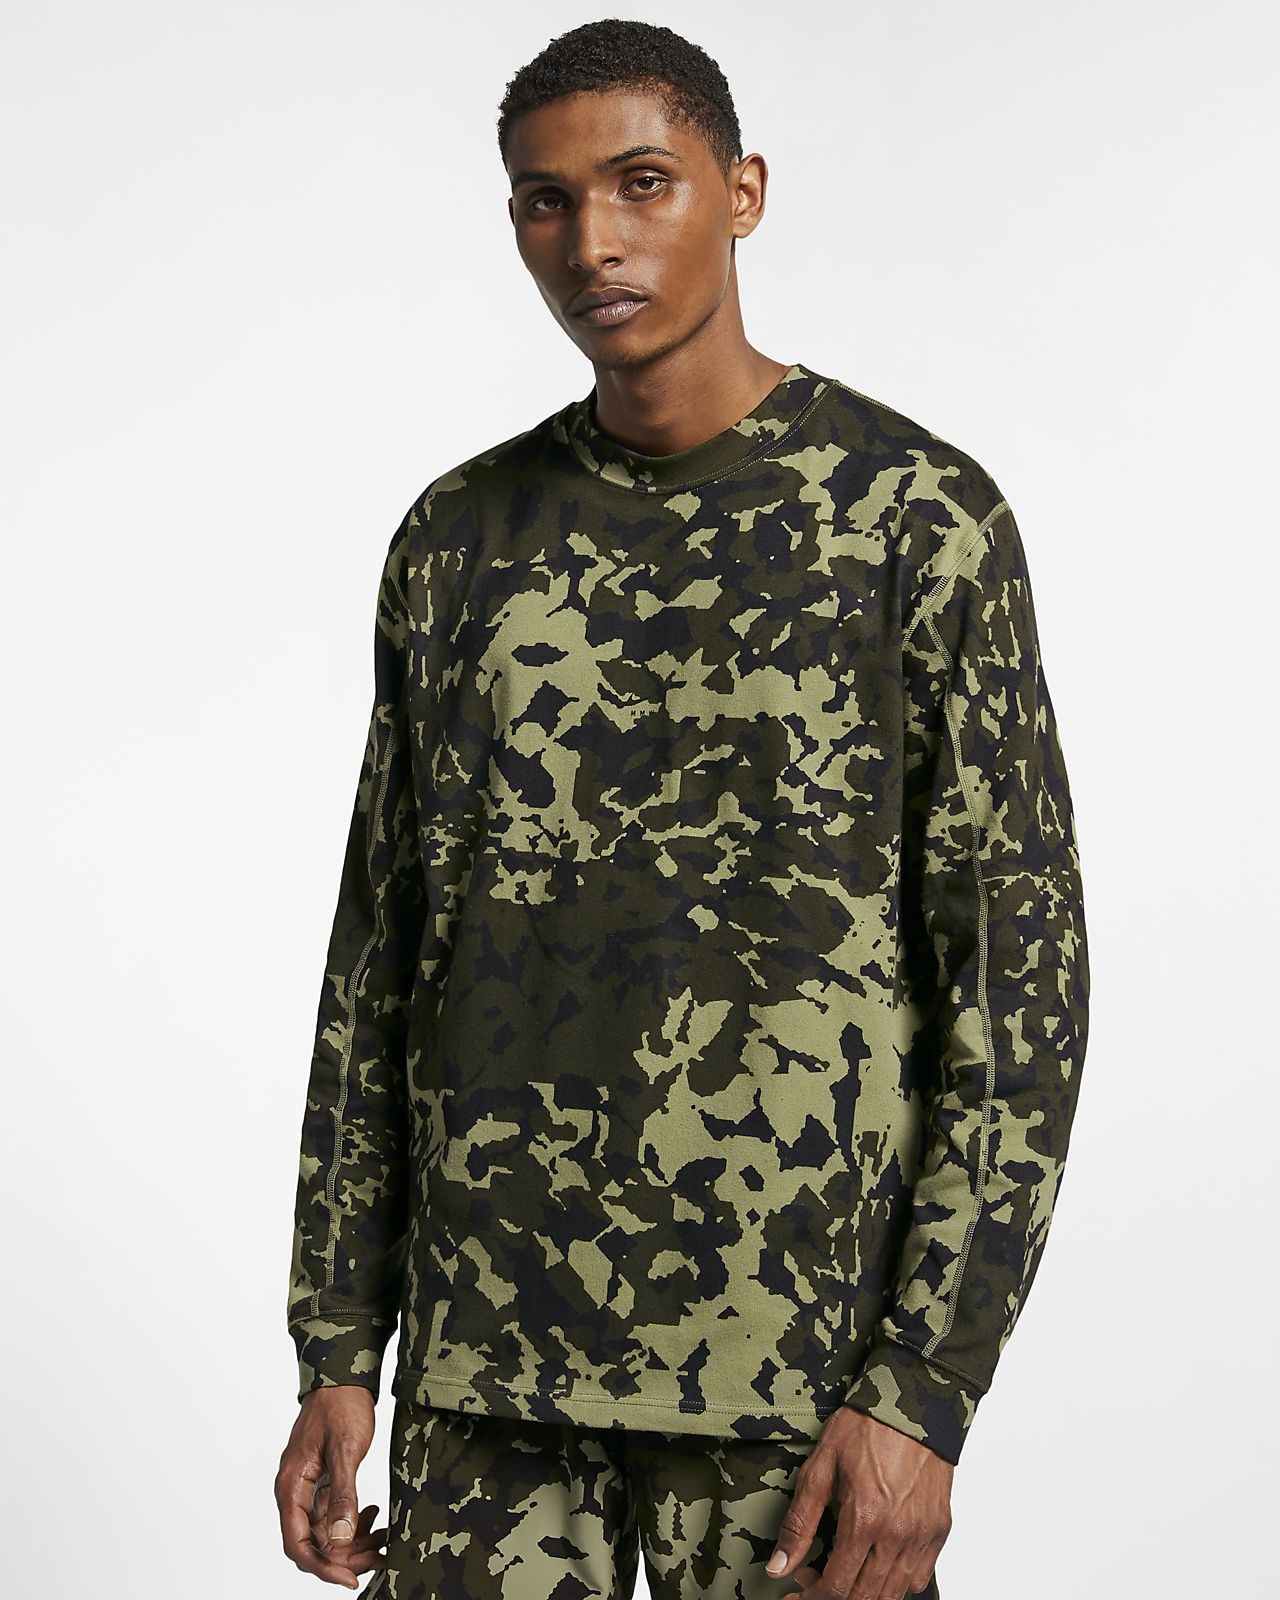 753933ea45a1 Nike x MMW Men s Printed Long-Sleeve Top. Nike.com GB